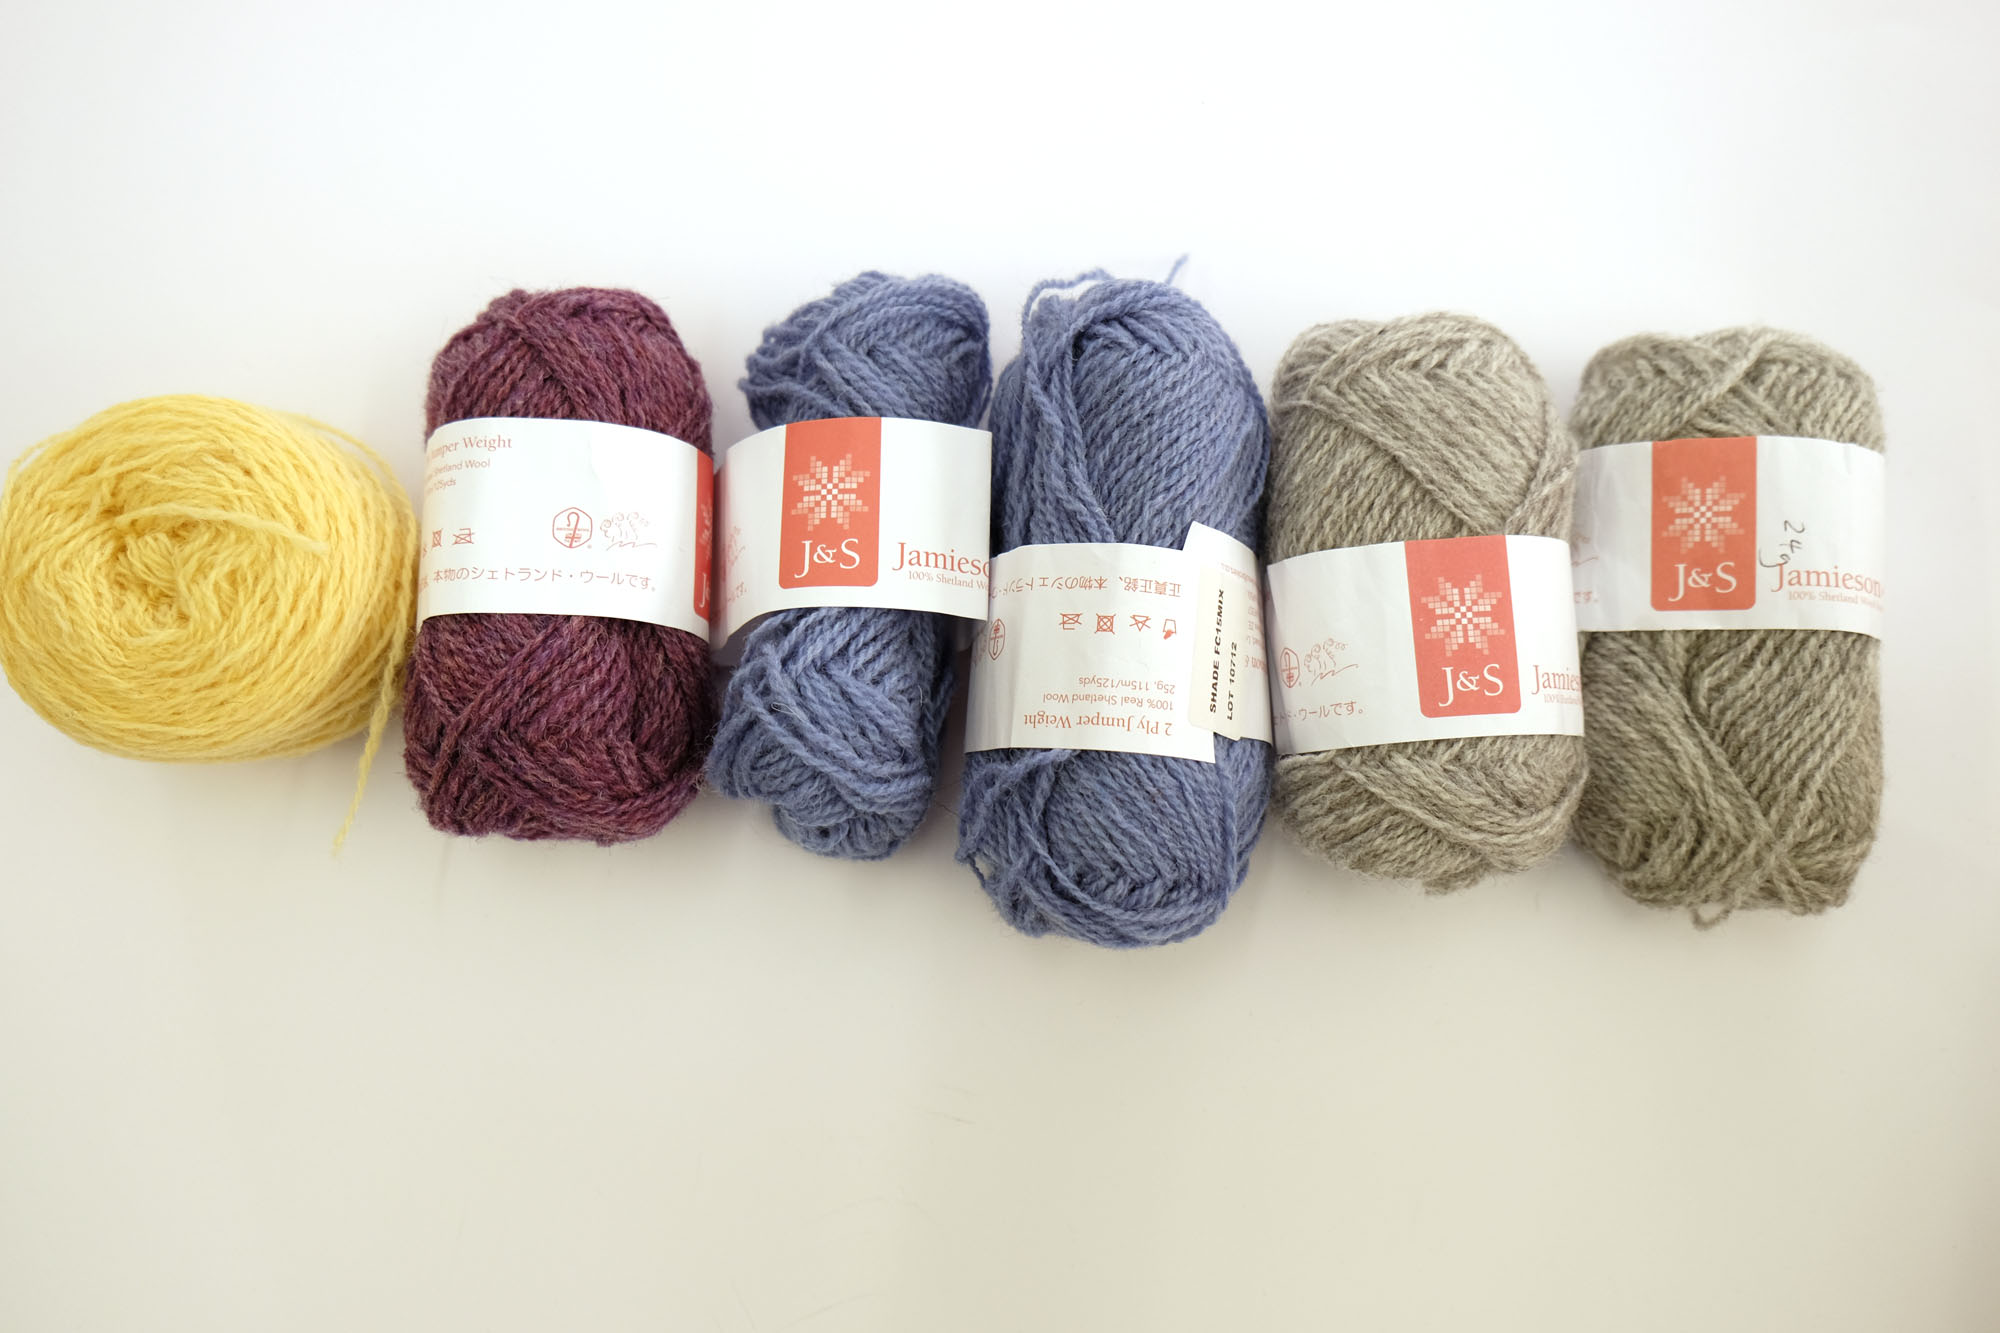 J&S Jumper Weight from left to right, shades 66, 133 mix, FC15 and 203